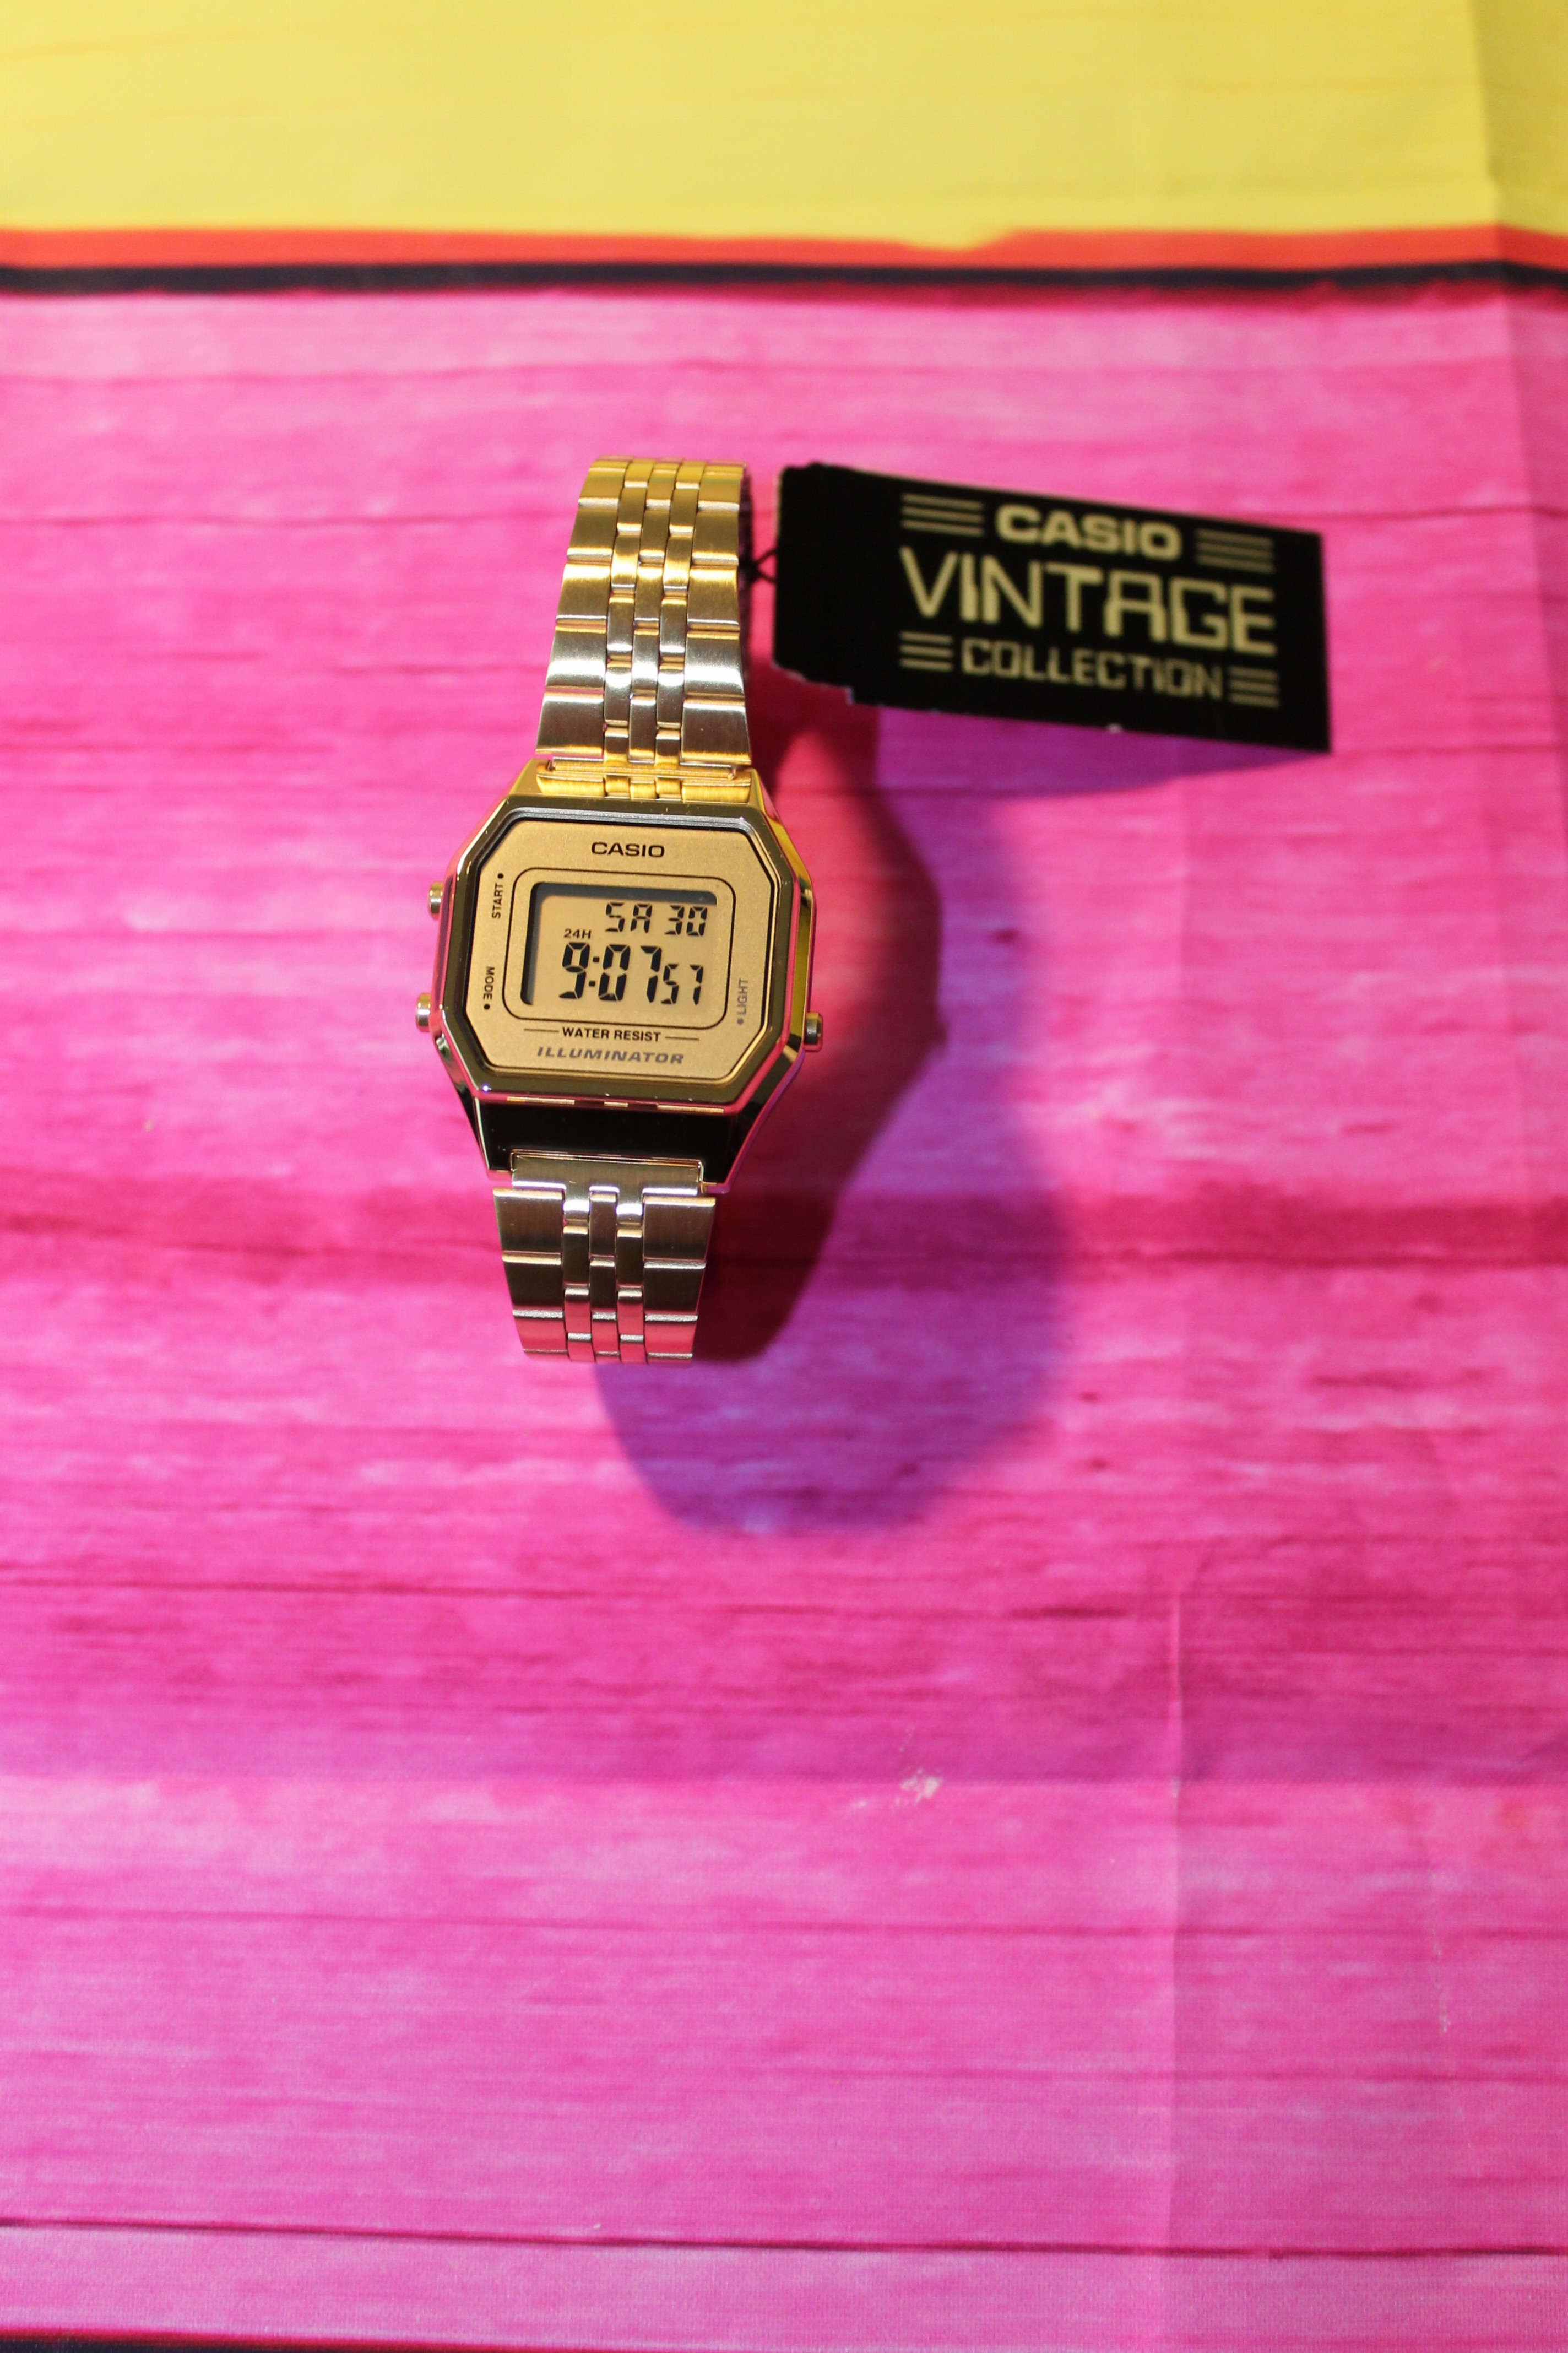 Head Back To School With One Of Casio's Vintage timepieces!